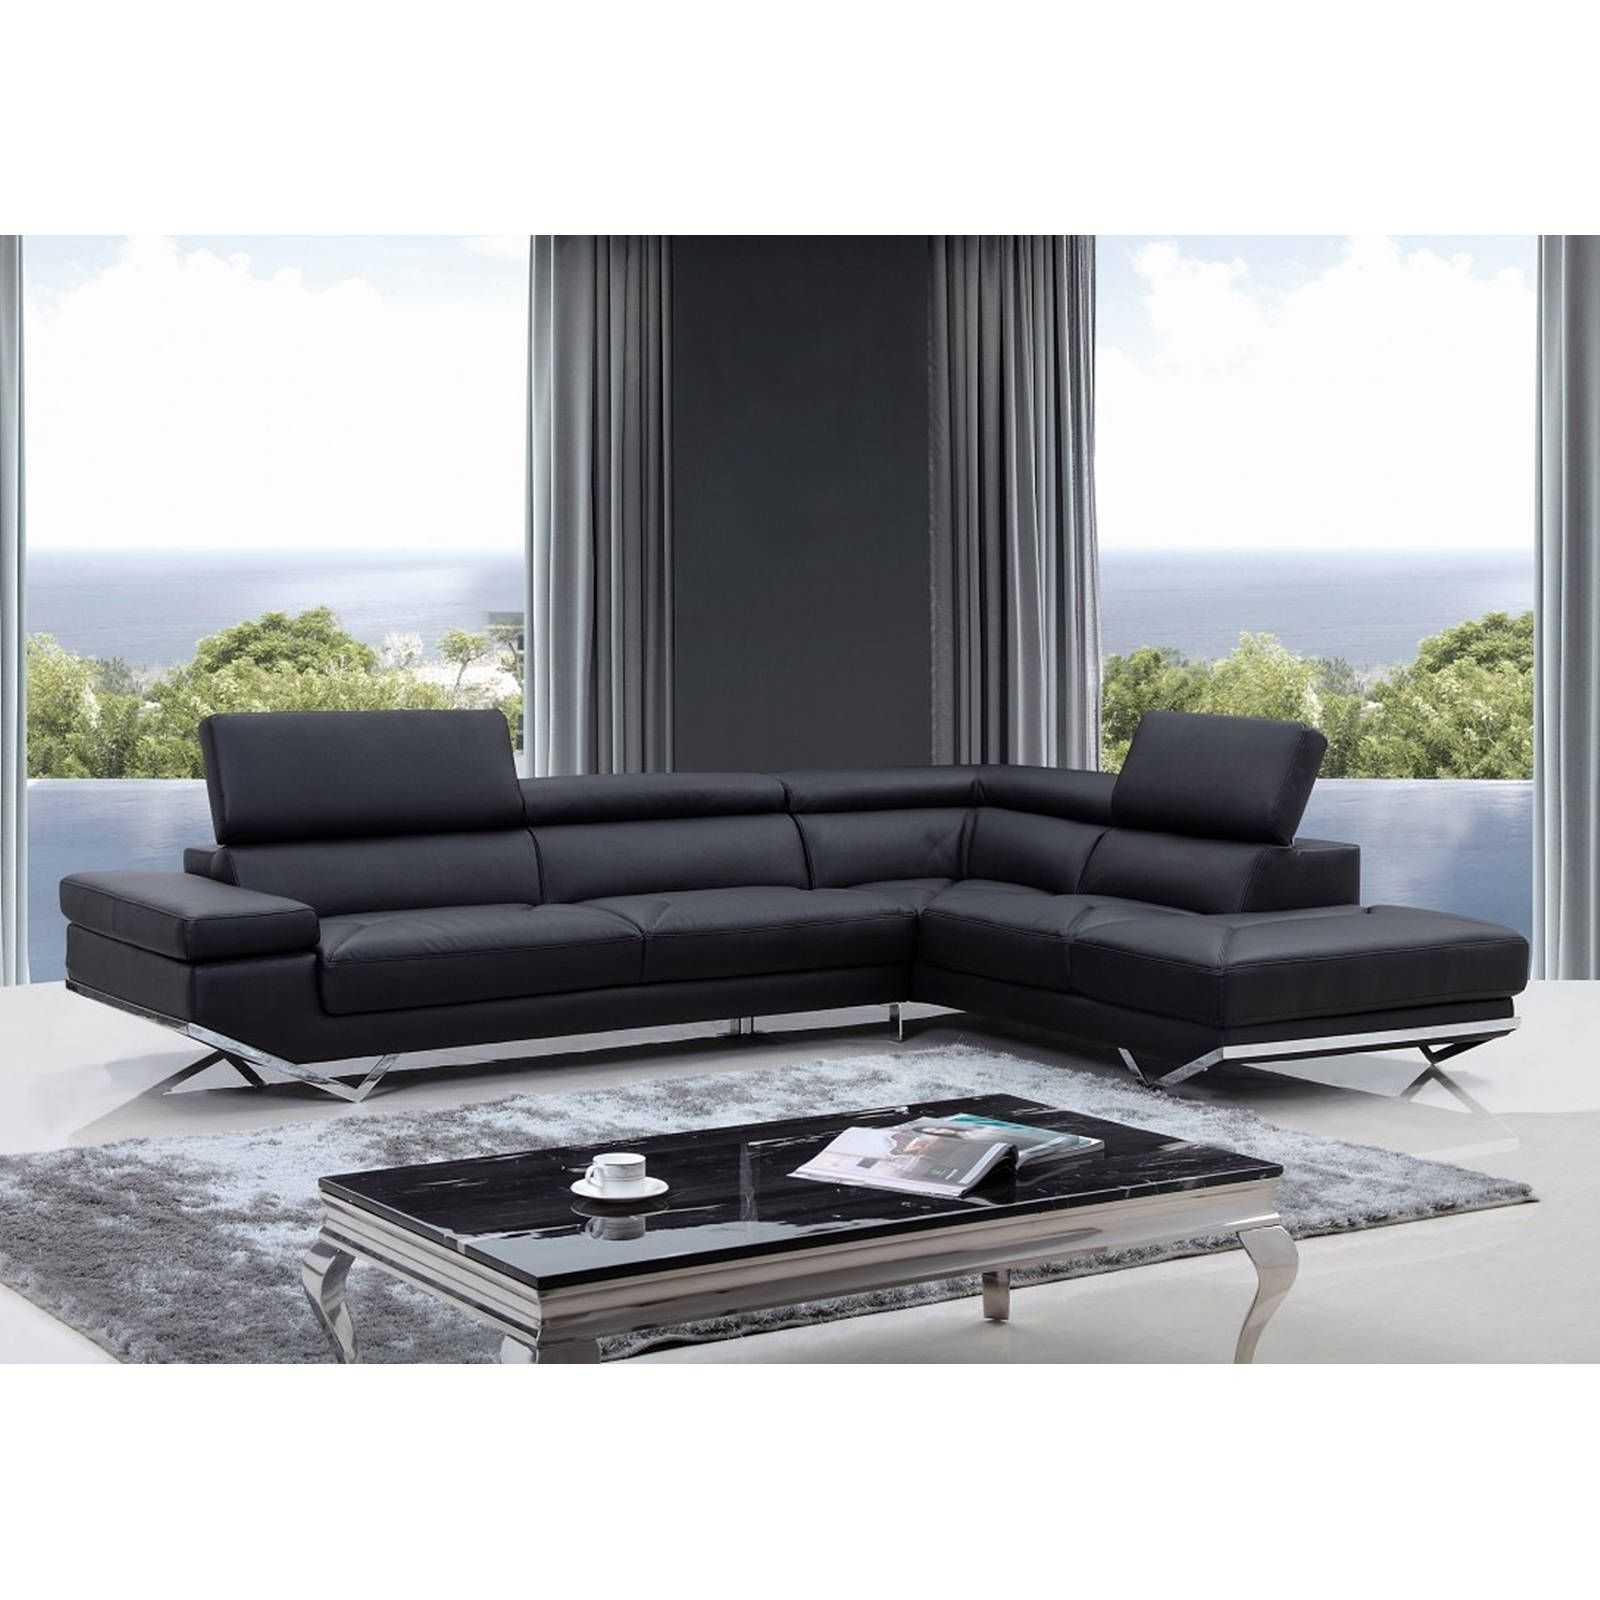 walden modern black leather l shaped sofa with adjustable headrests rh pinterest ch